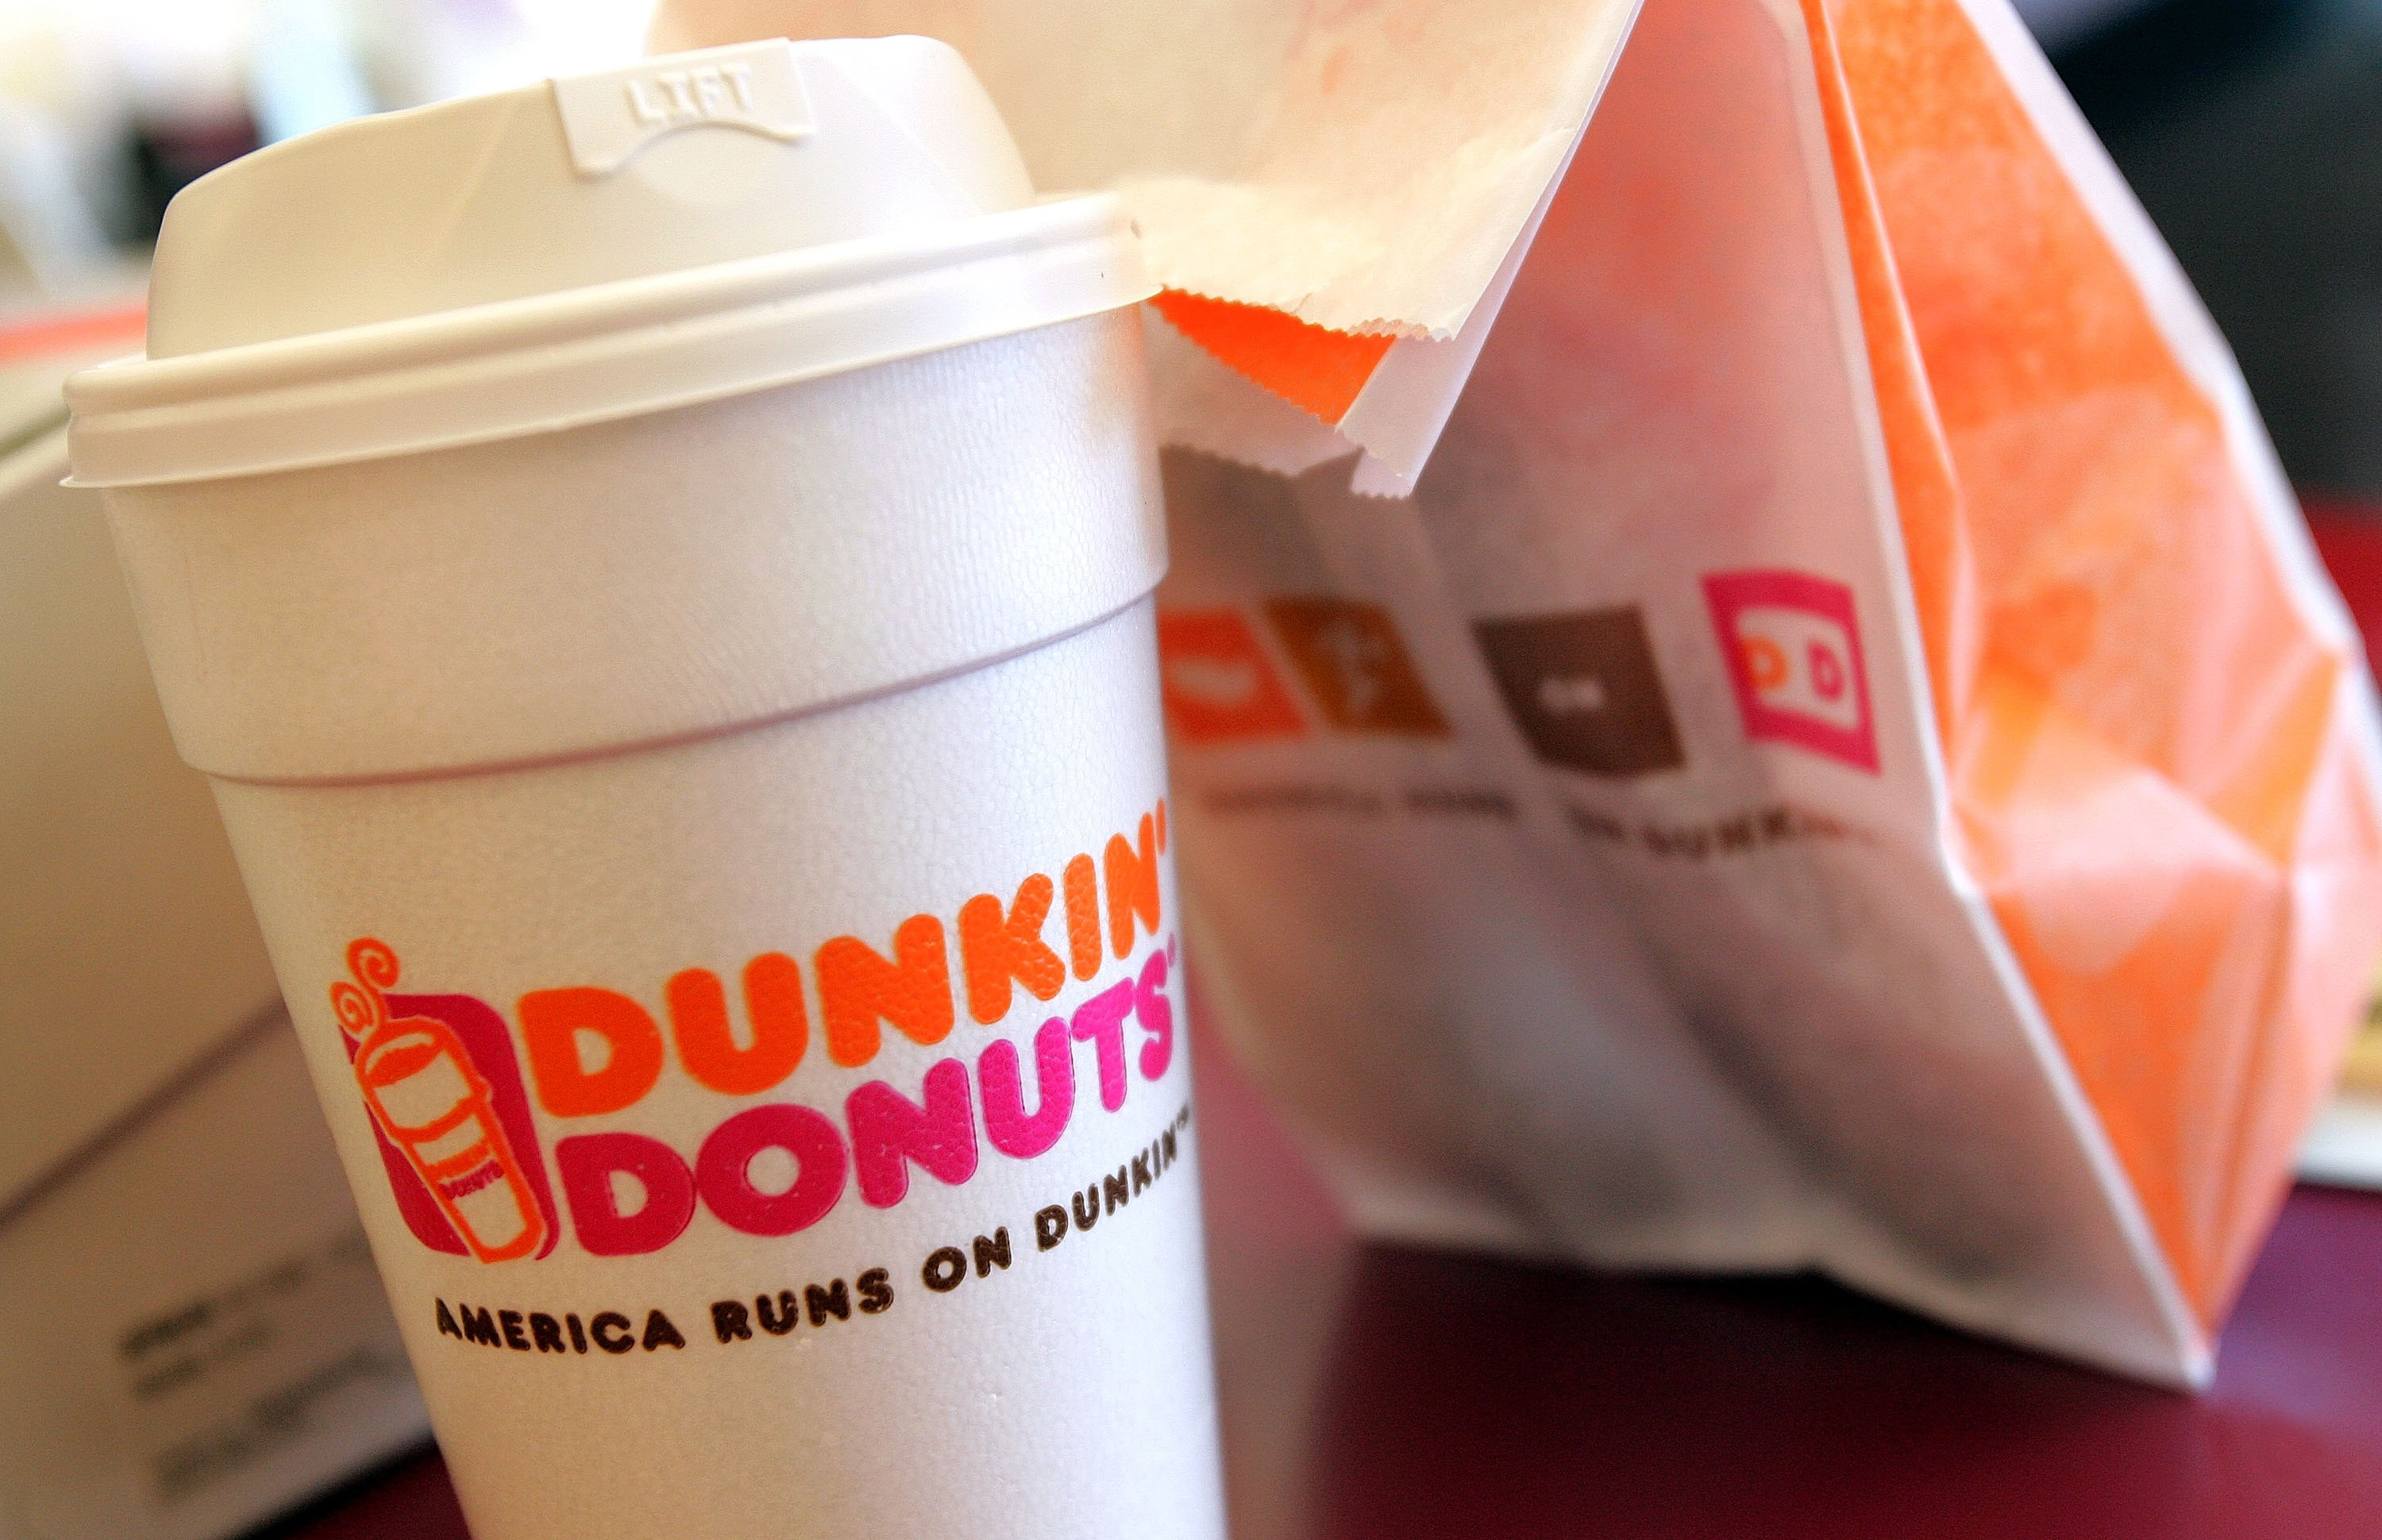 Dunkin Donuts, Dunkin Donuts Holiday Hours, Dunkin Donuts Menu, Dunkin Donuts Open On Thanksgiving 2017, Dunkin Donuts Drinks